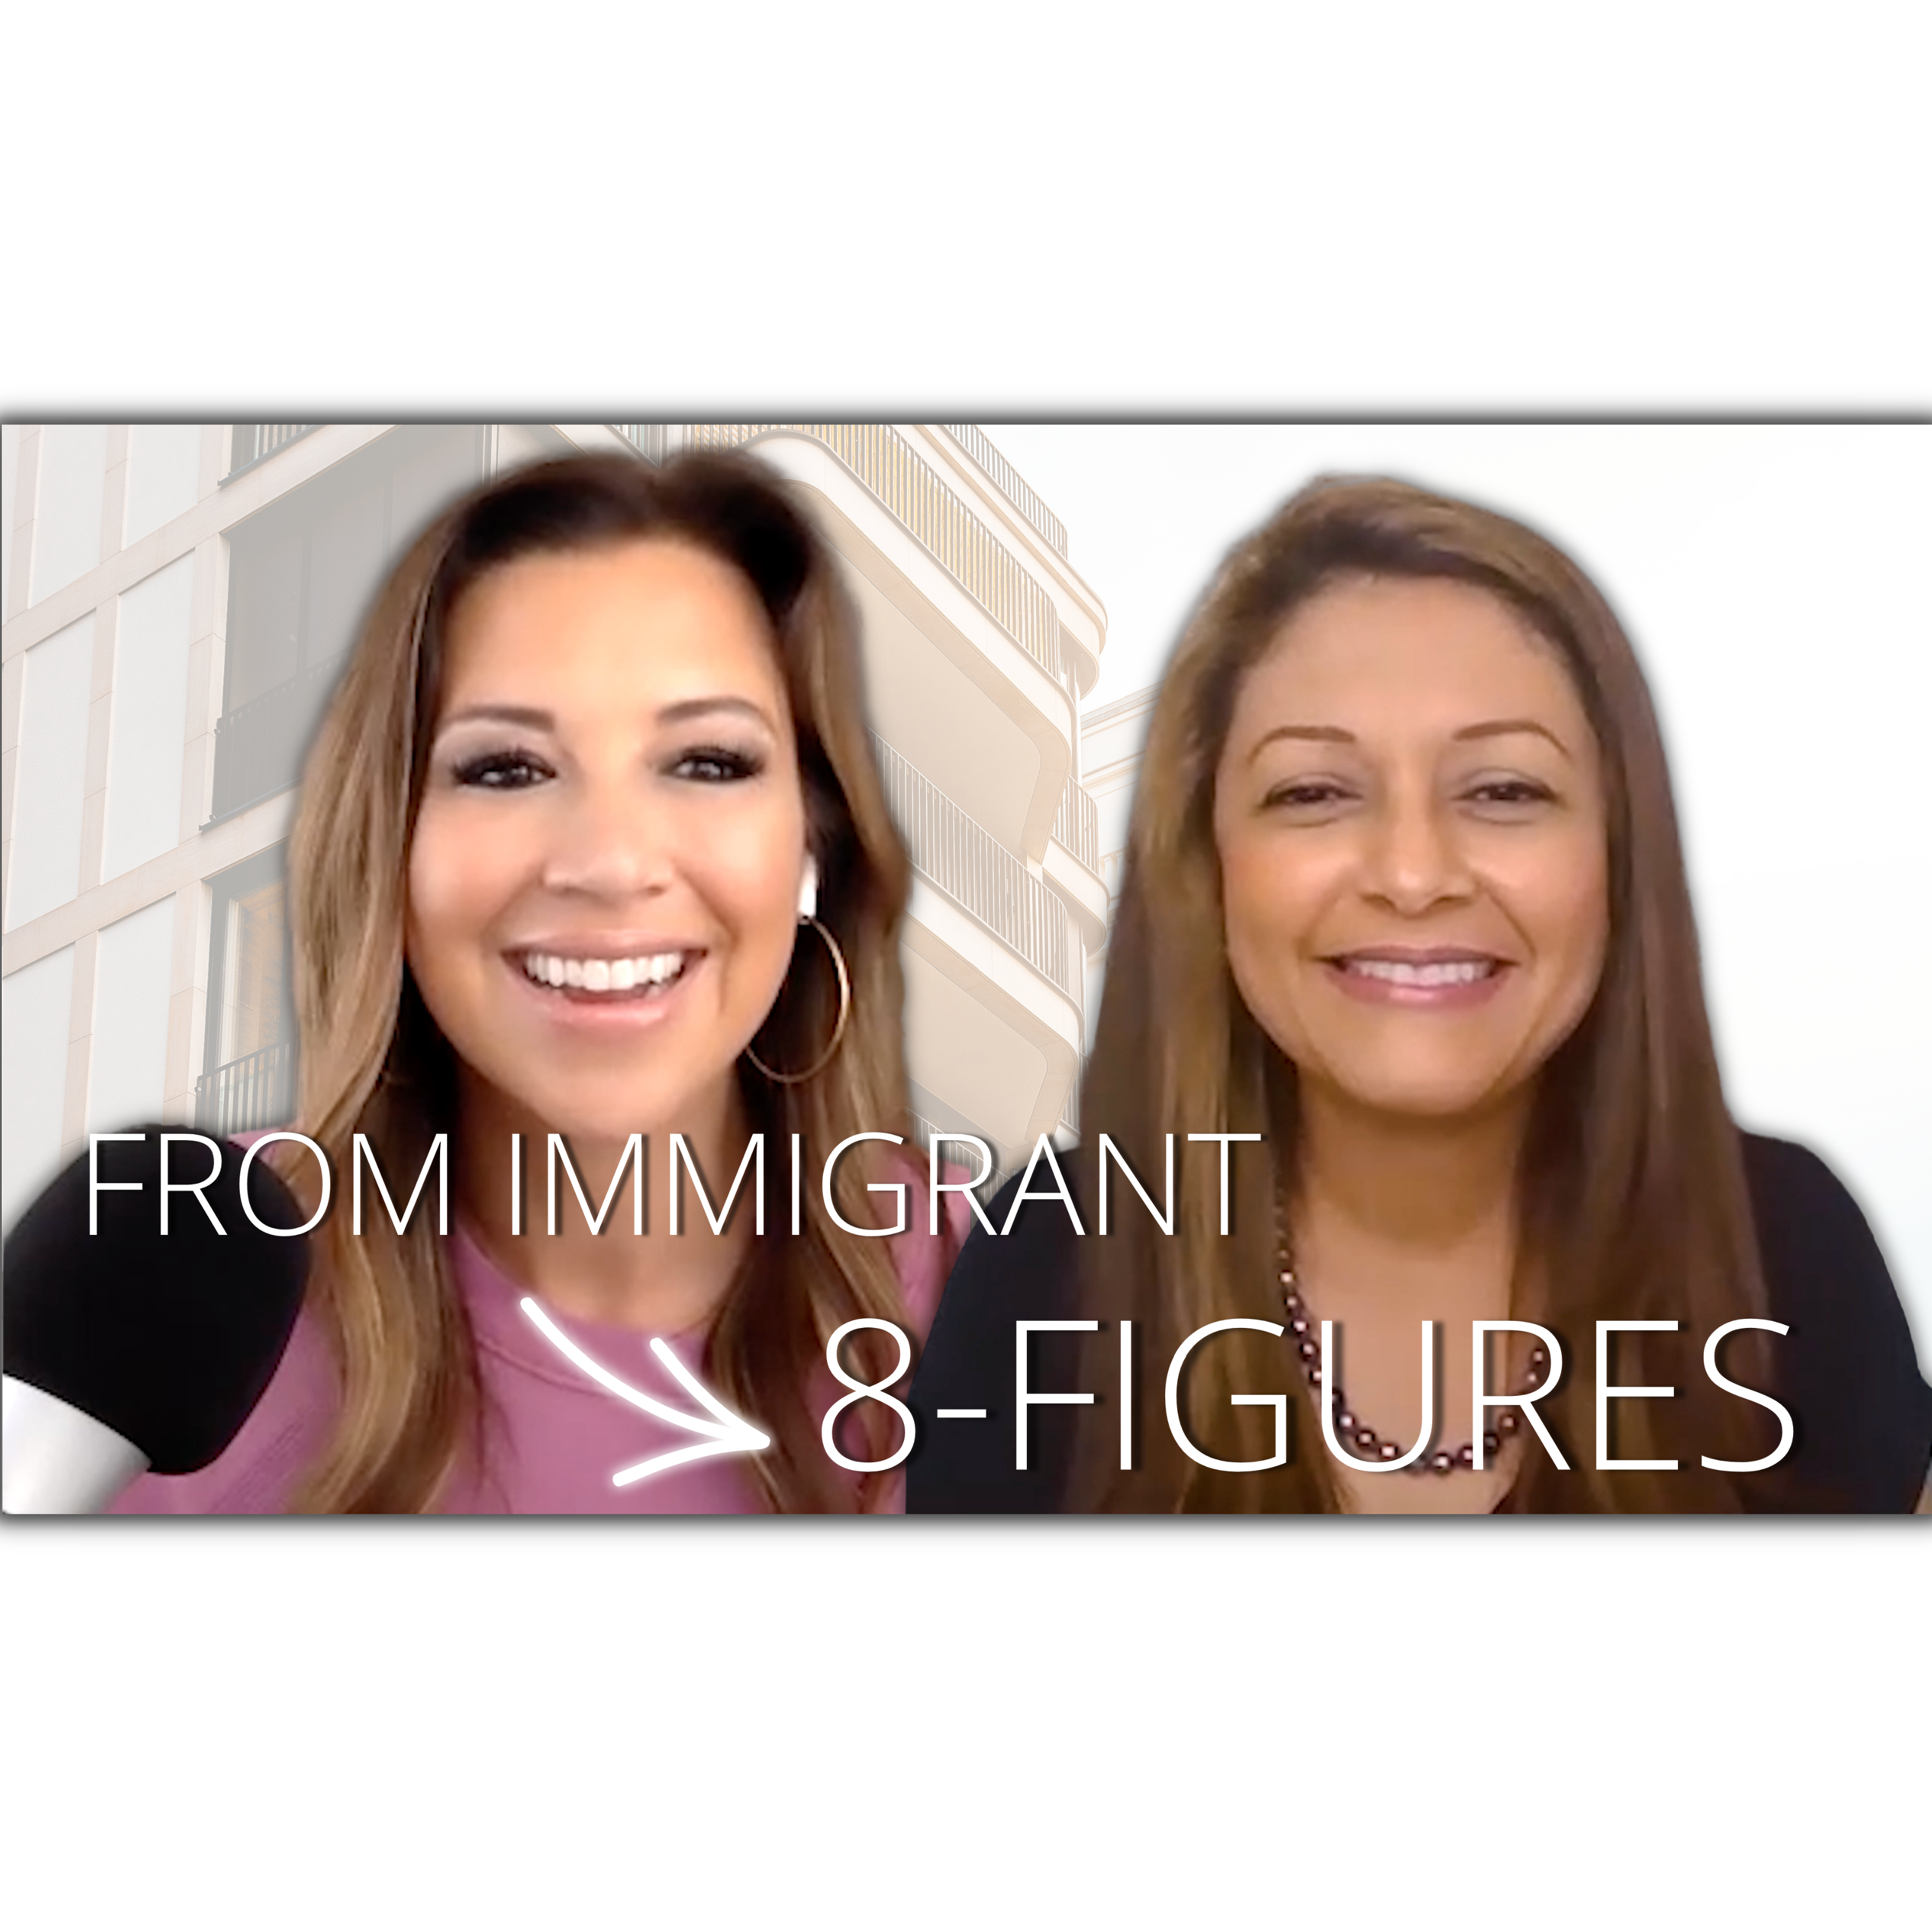 Read more about the article An Immigrant's Journey to Becoming an 8-Figure Investor with Michelle Bosch